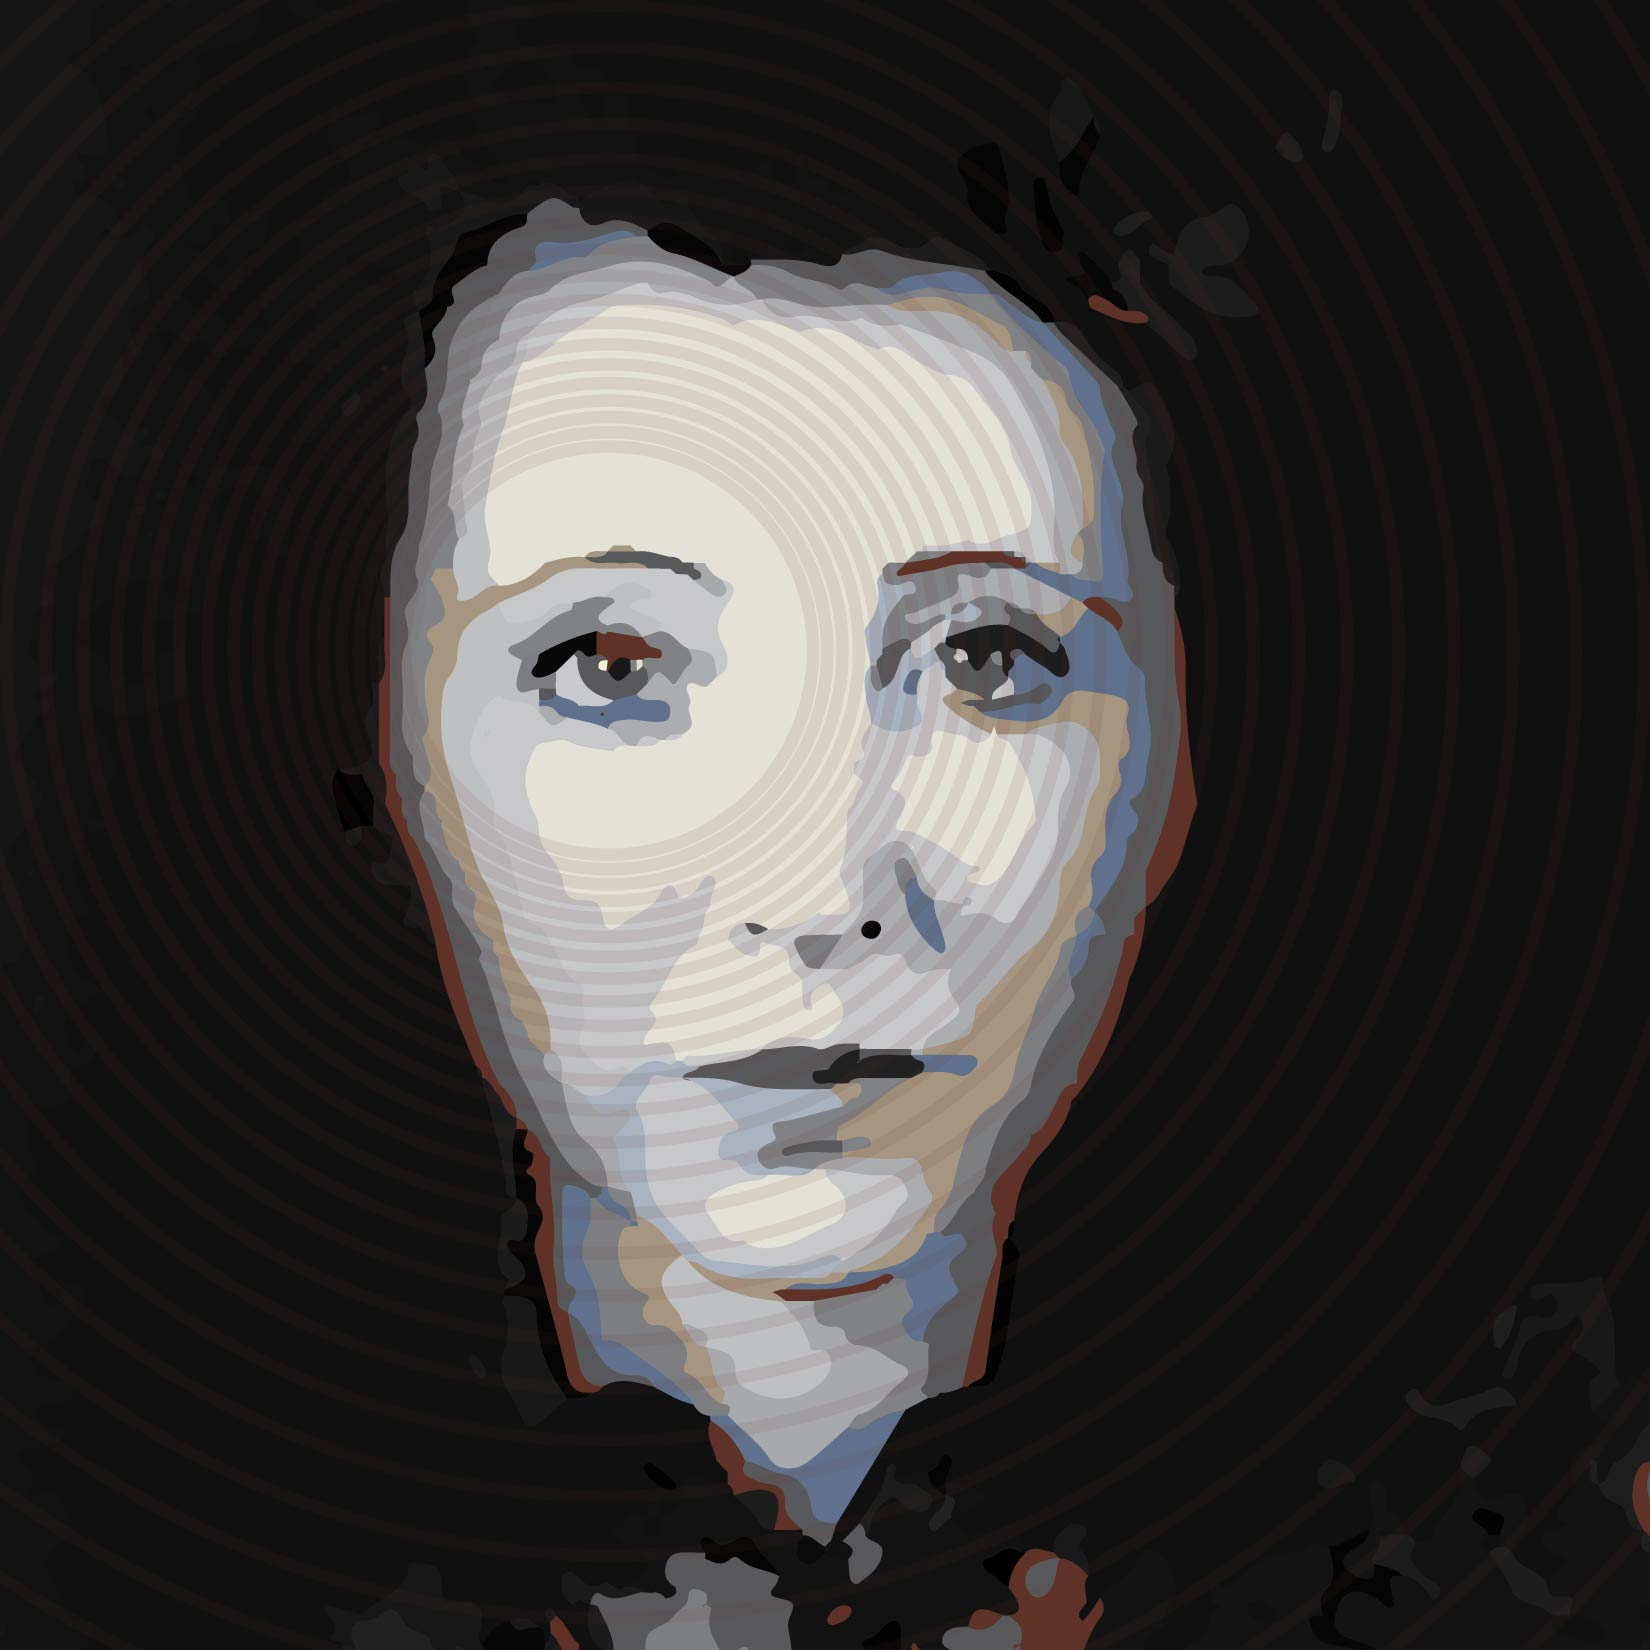 Day 229: Anais Nin Portraits, Part 2